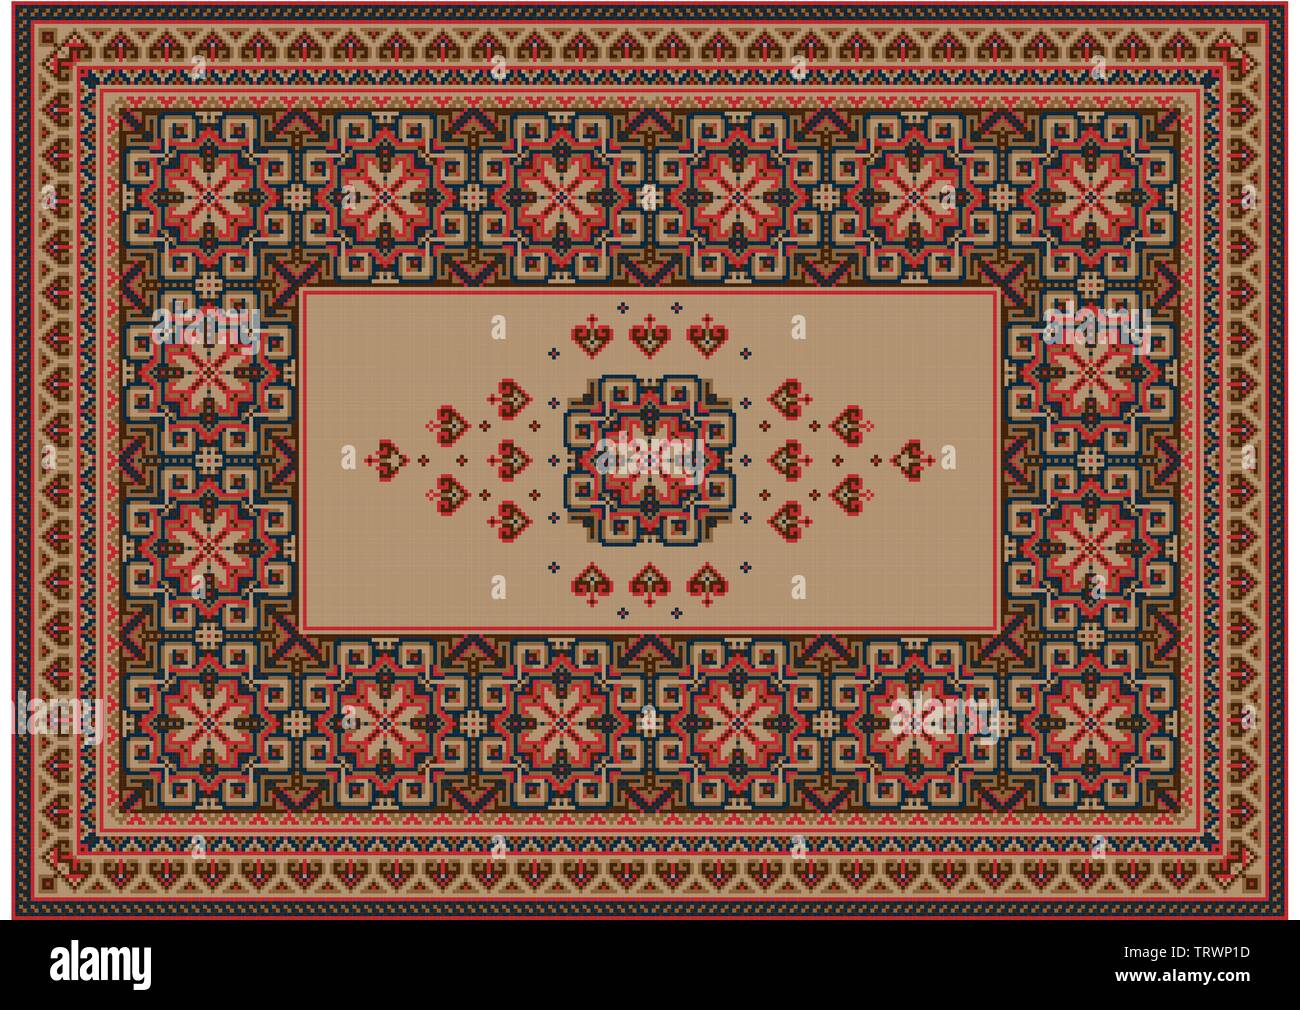 Image of a luxurious old oriental carpet with brown, beige and red patterns and ornament in the center on a beige background - Stock Image